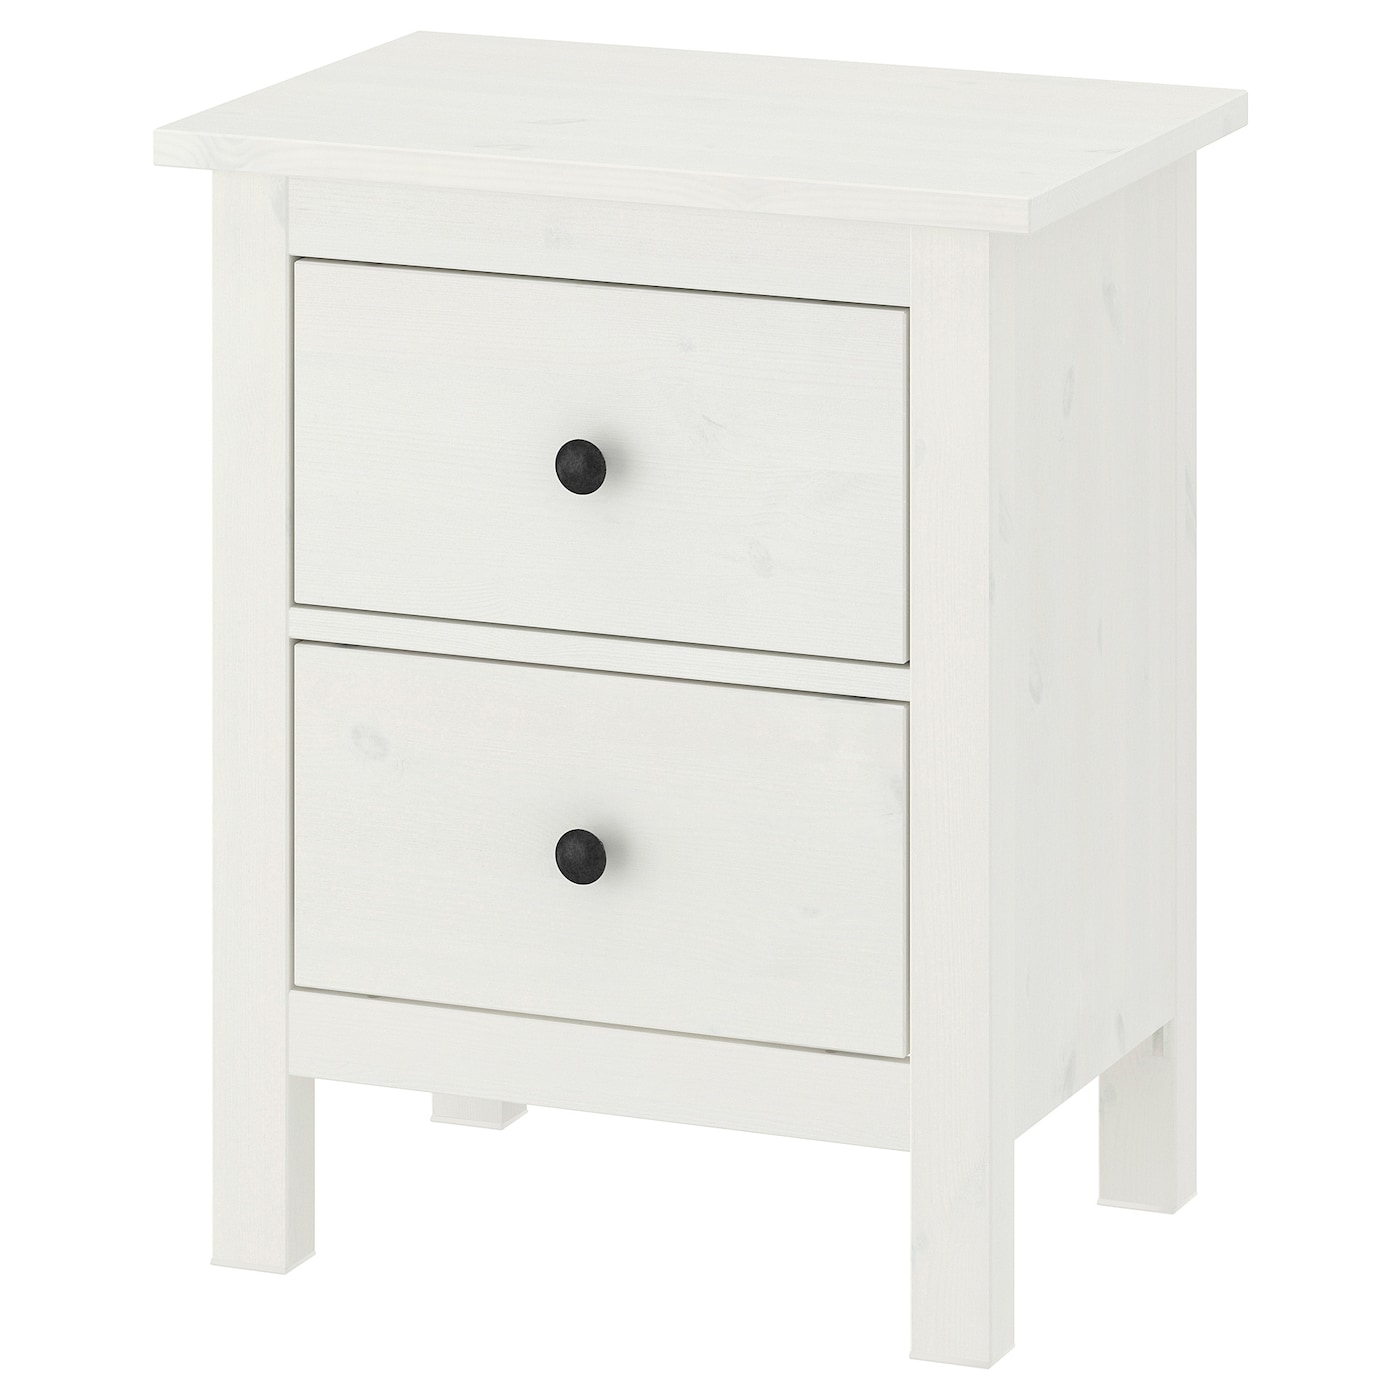 HEMNES Chest of 6 drawers - white stain 6x6 cm